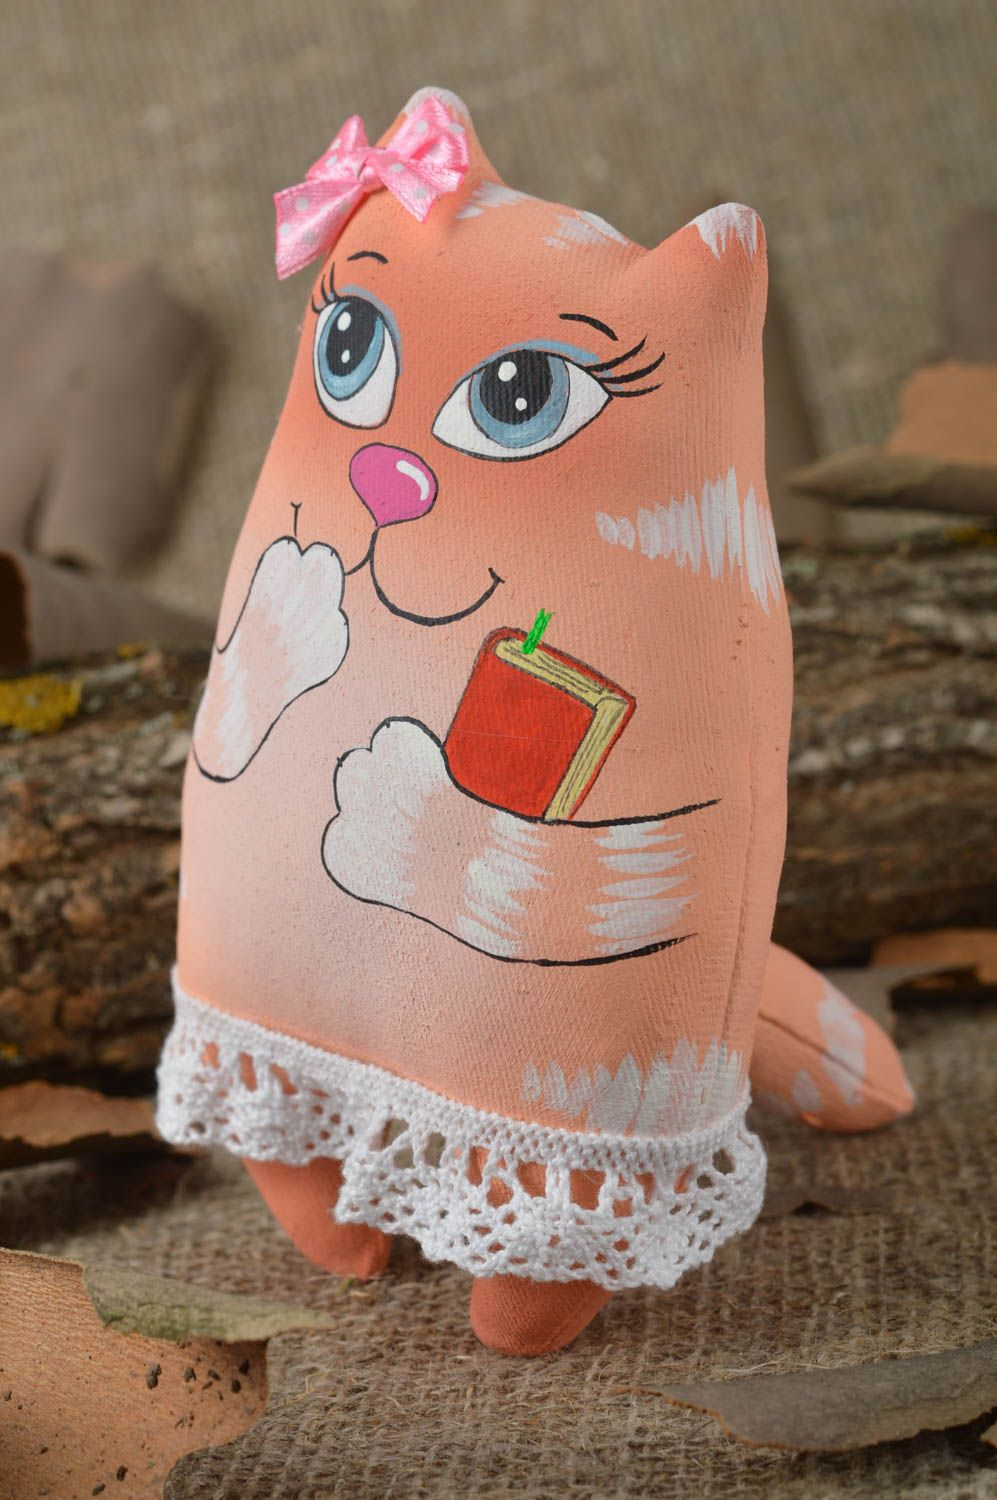 Beautiful handmade soft toy scented toy stuffed toy home decoration gift ideas photo 1